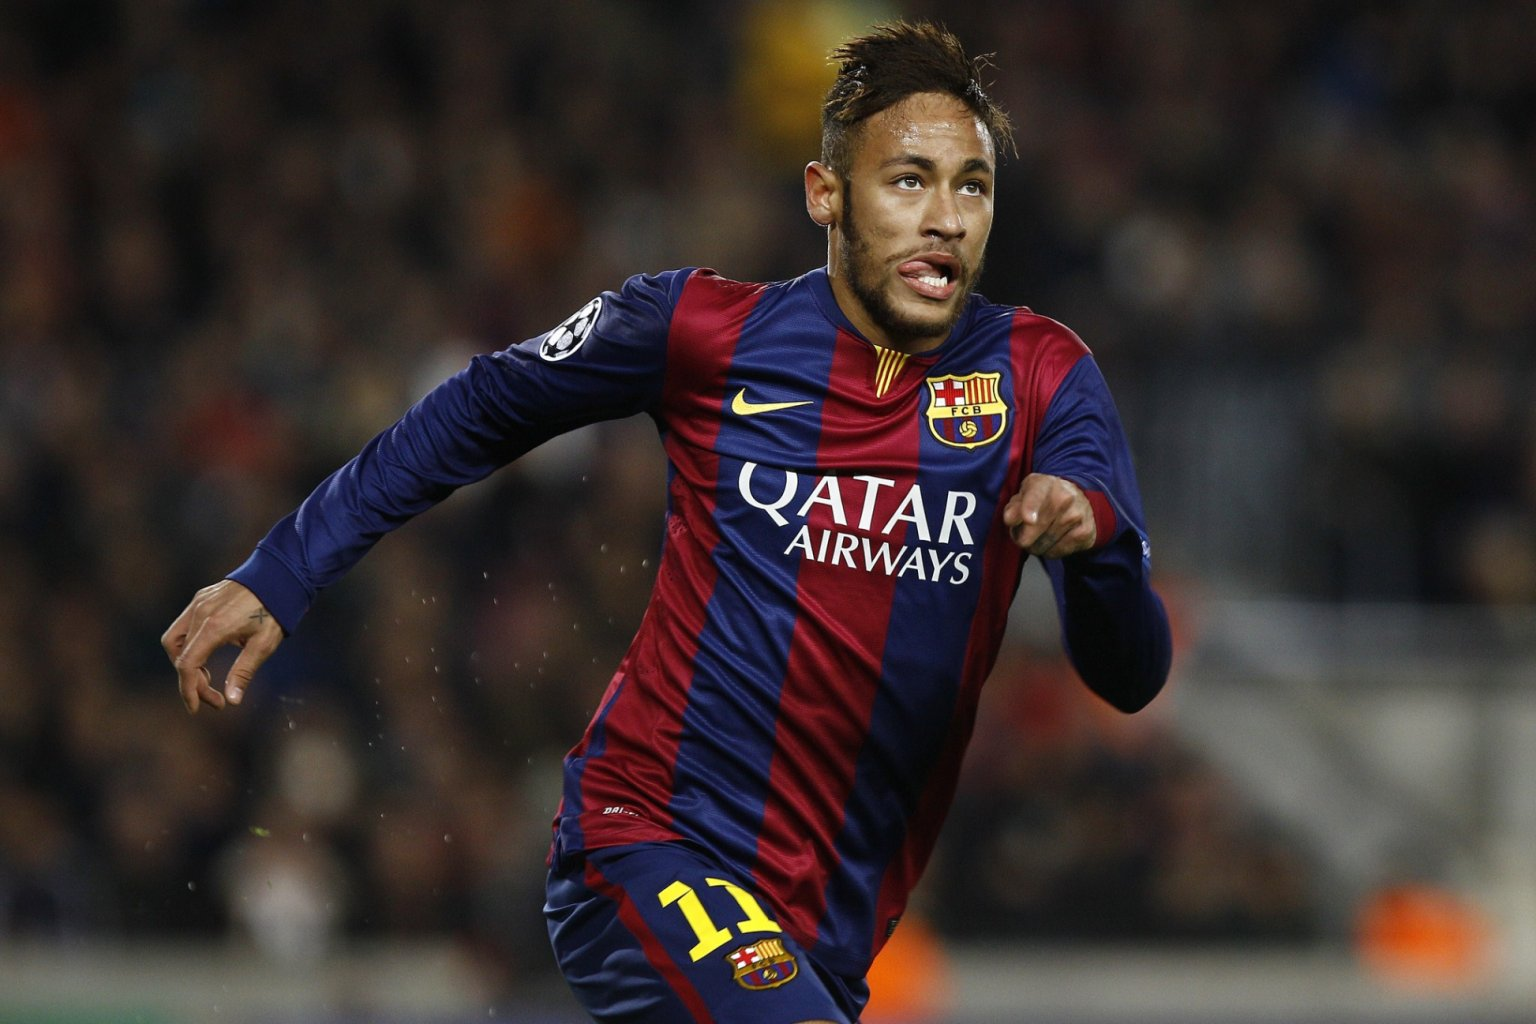 Neymar playing for Barcelona in 2015